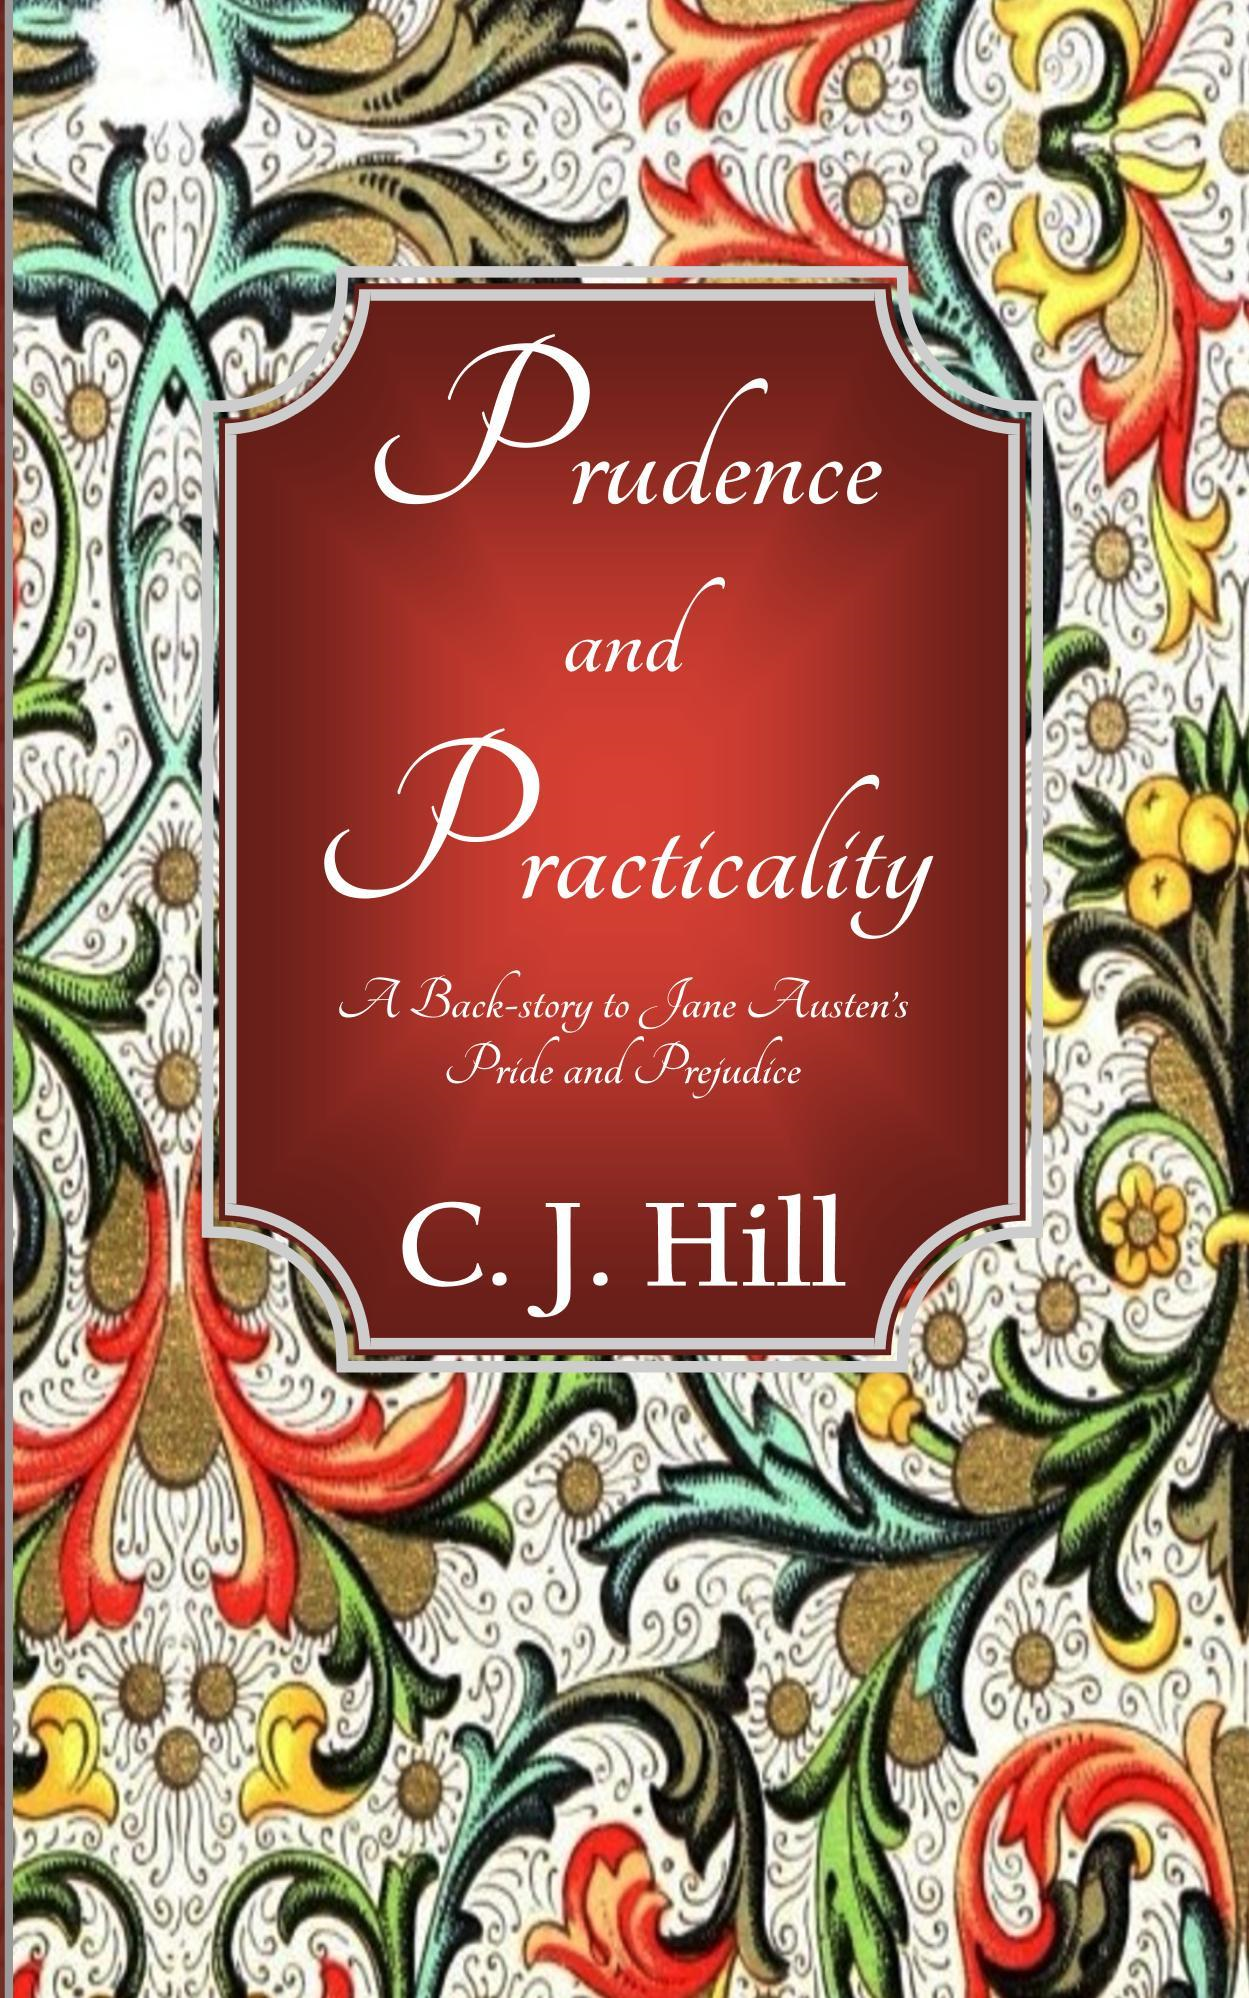 Prudence and Practicality: A Back-story to Jane Austen's Pride and Prejudice By: C. J. Hill